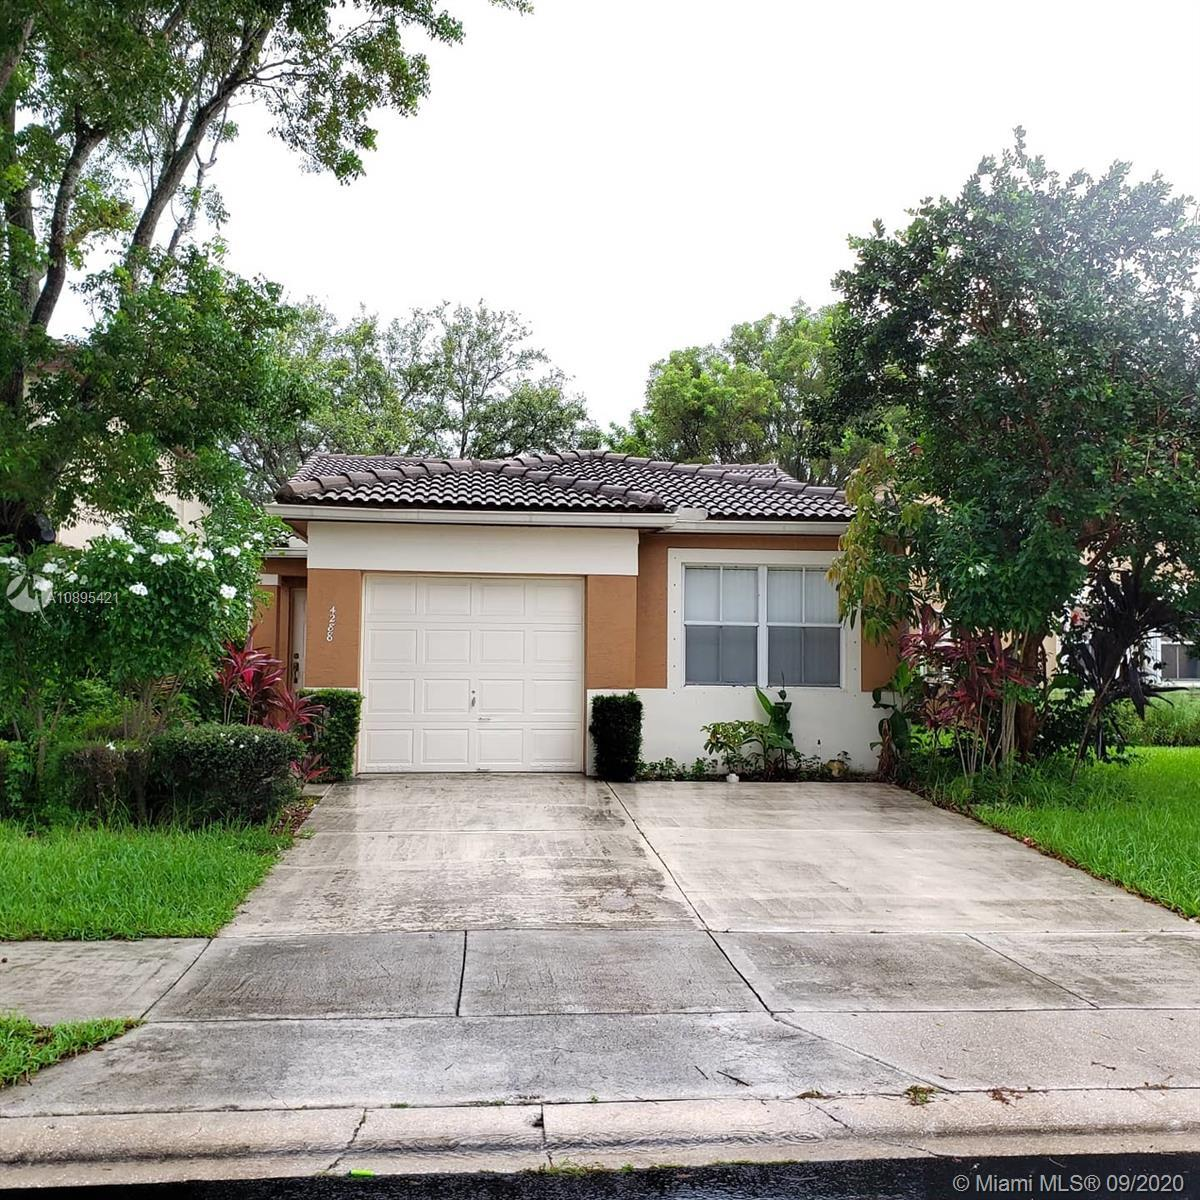 Cozy boutique gated community one story house, community pool and playground, overlooking the lake,